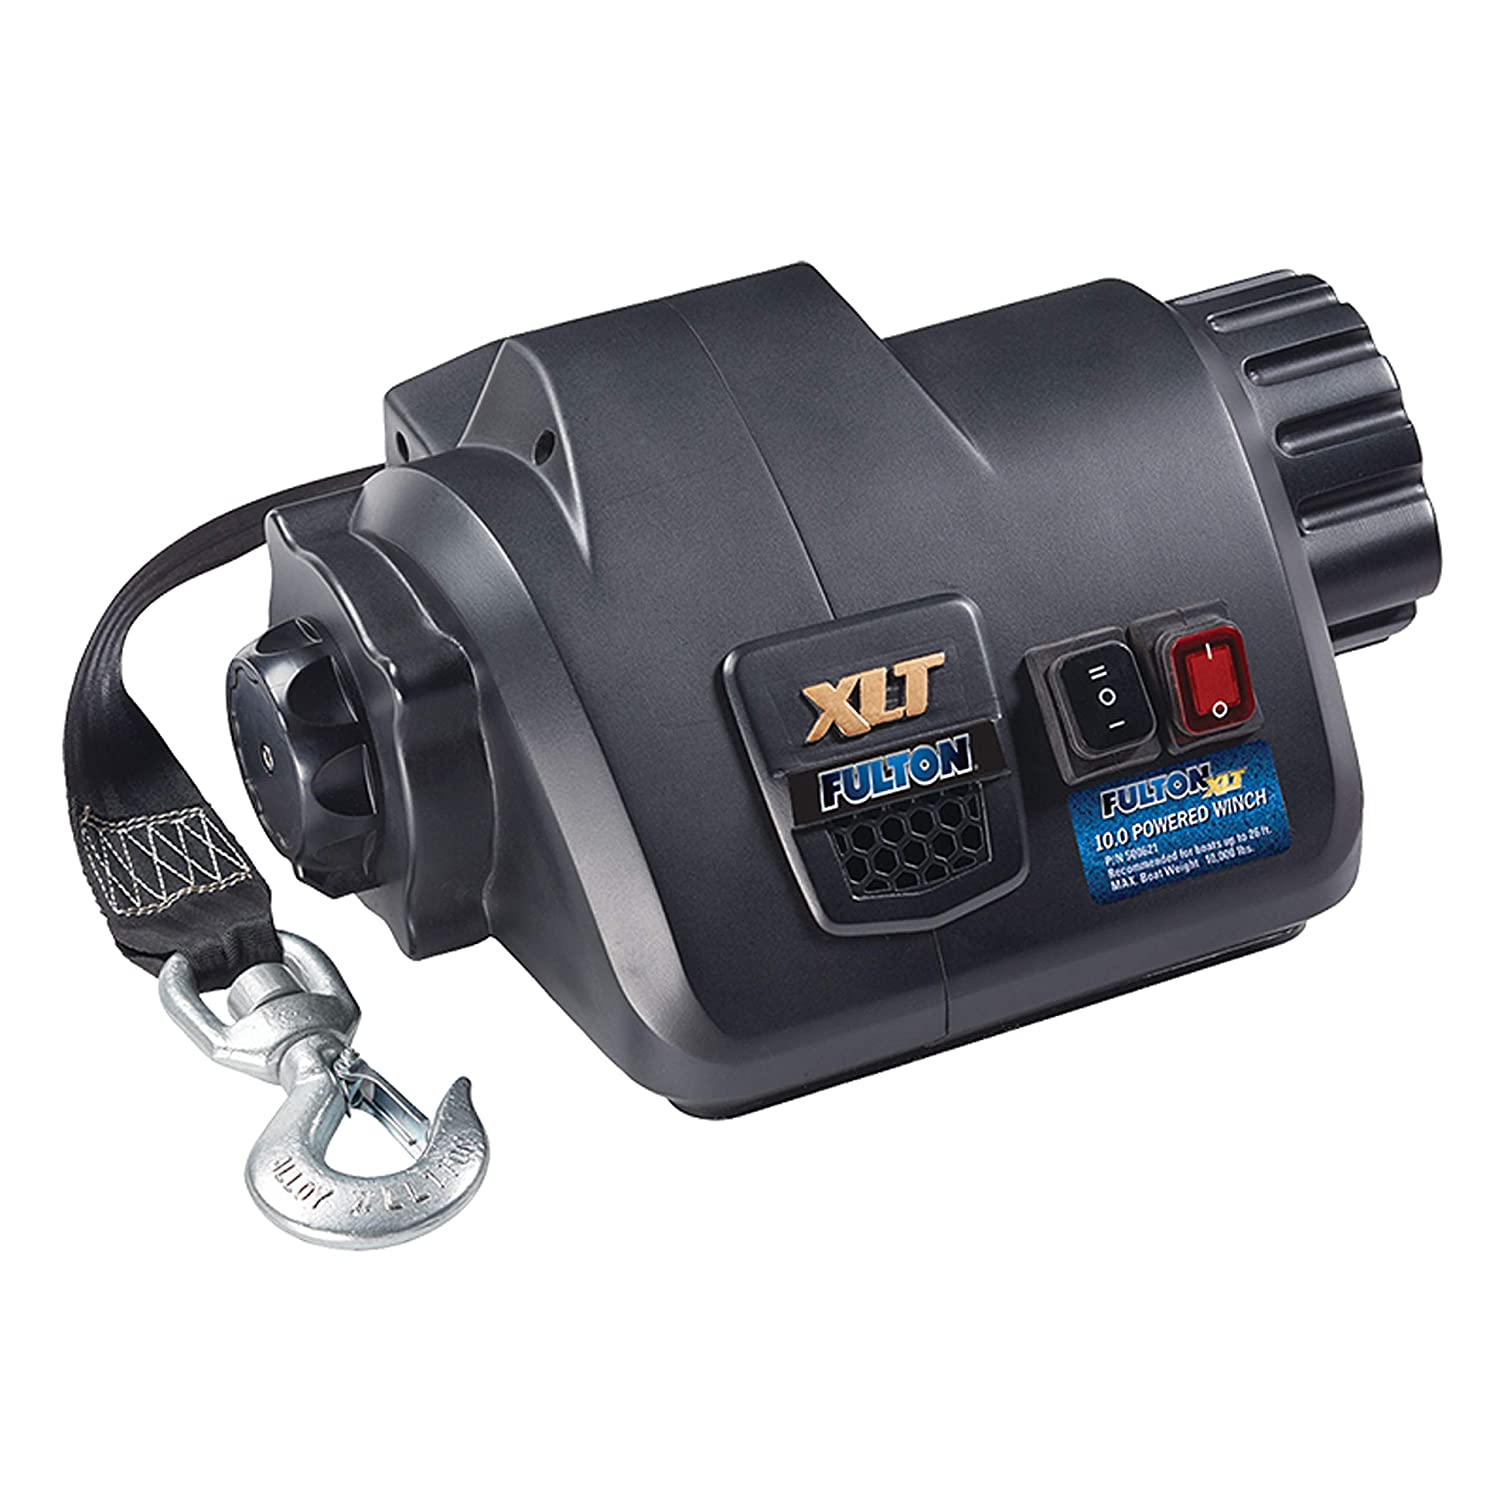 Fulton 500621 XLT Powered Winch with Wireless Remote-10,000 Lbs Capacity